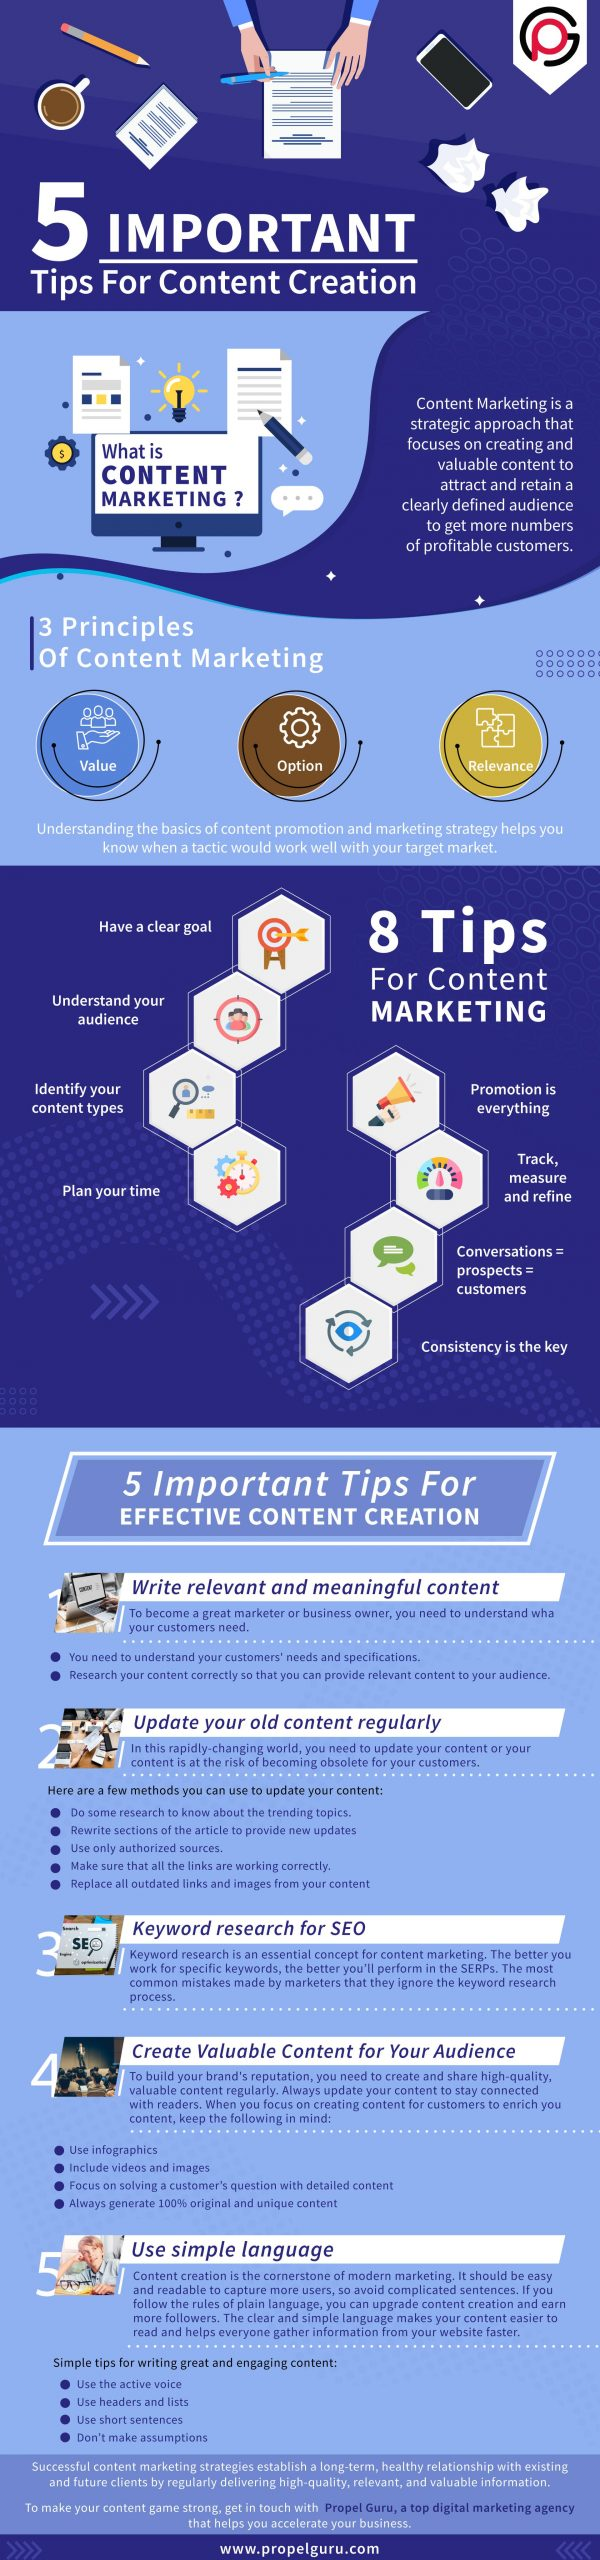 5-Important-Tips-For-Content-Creation